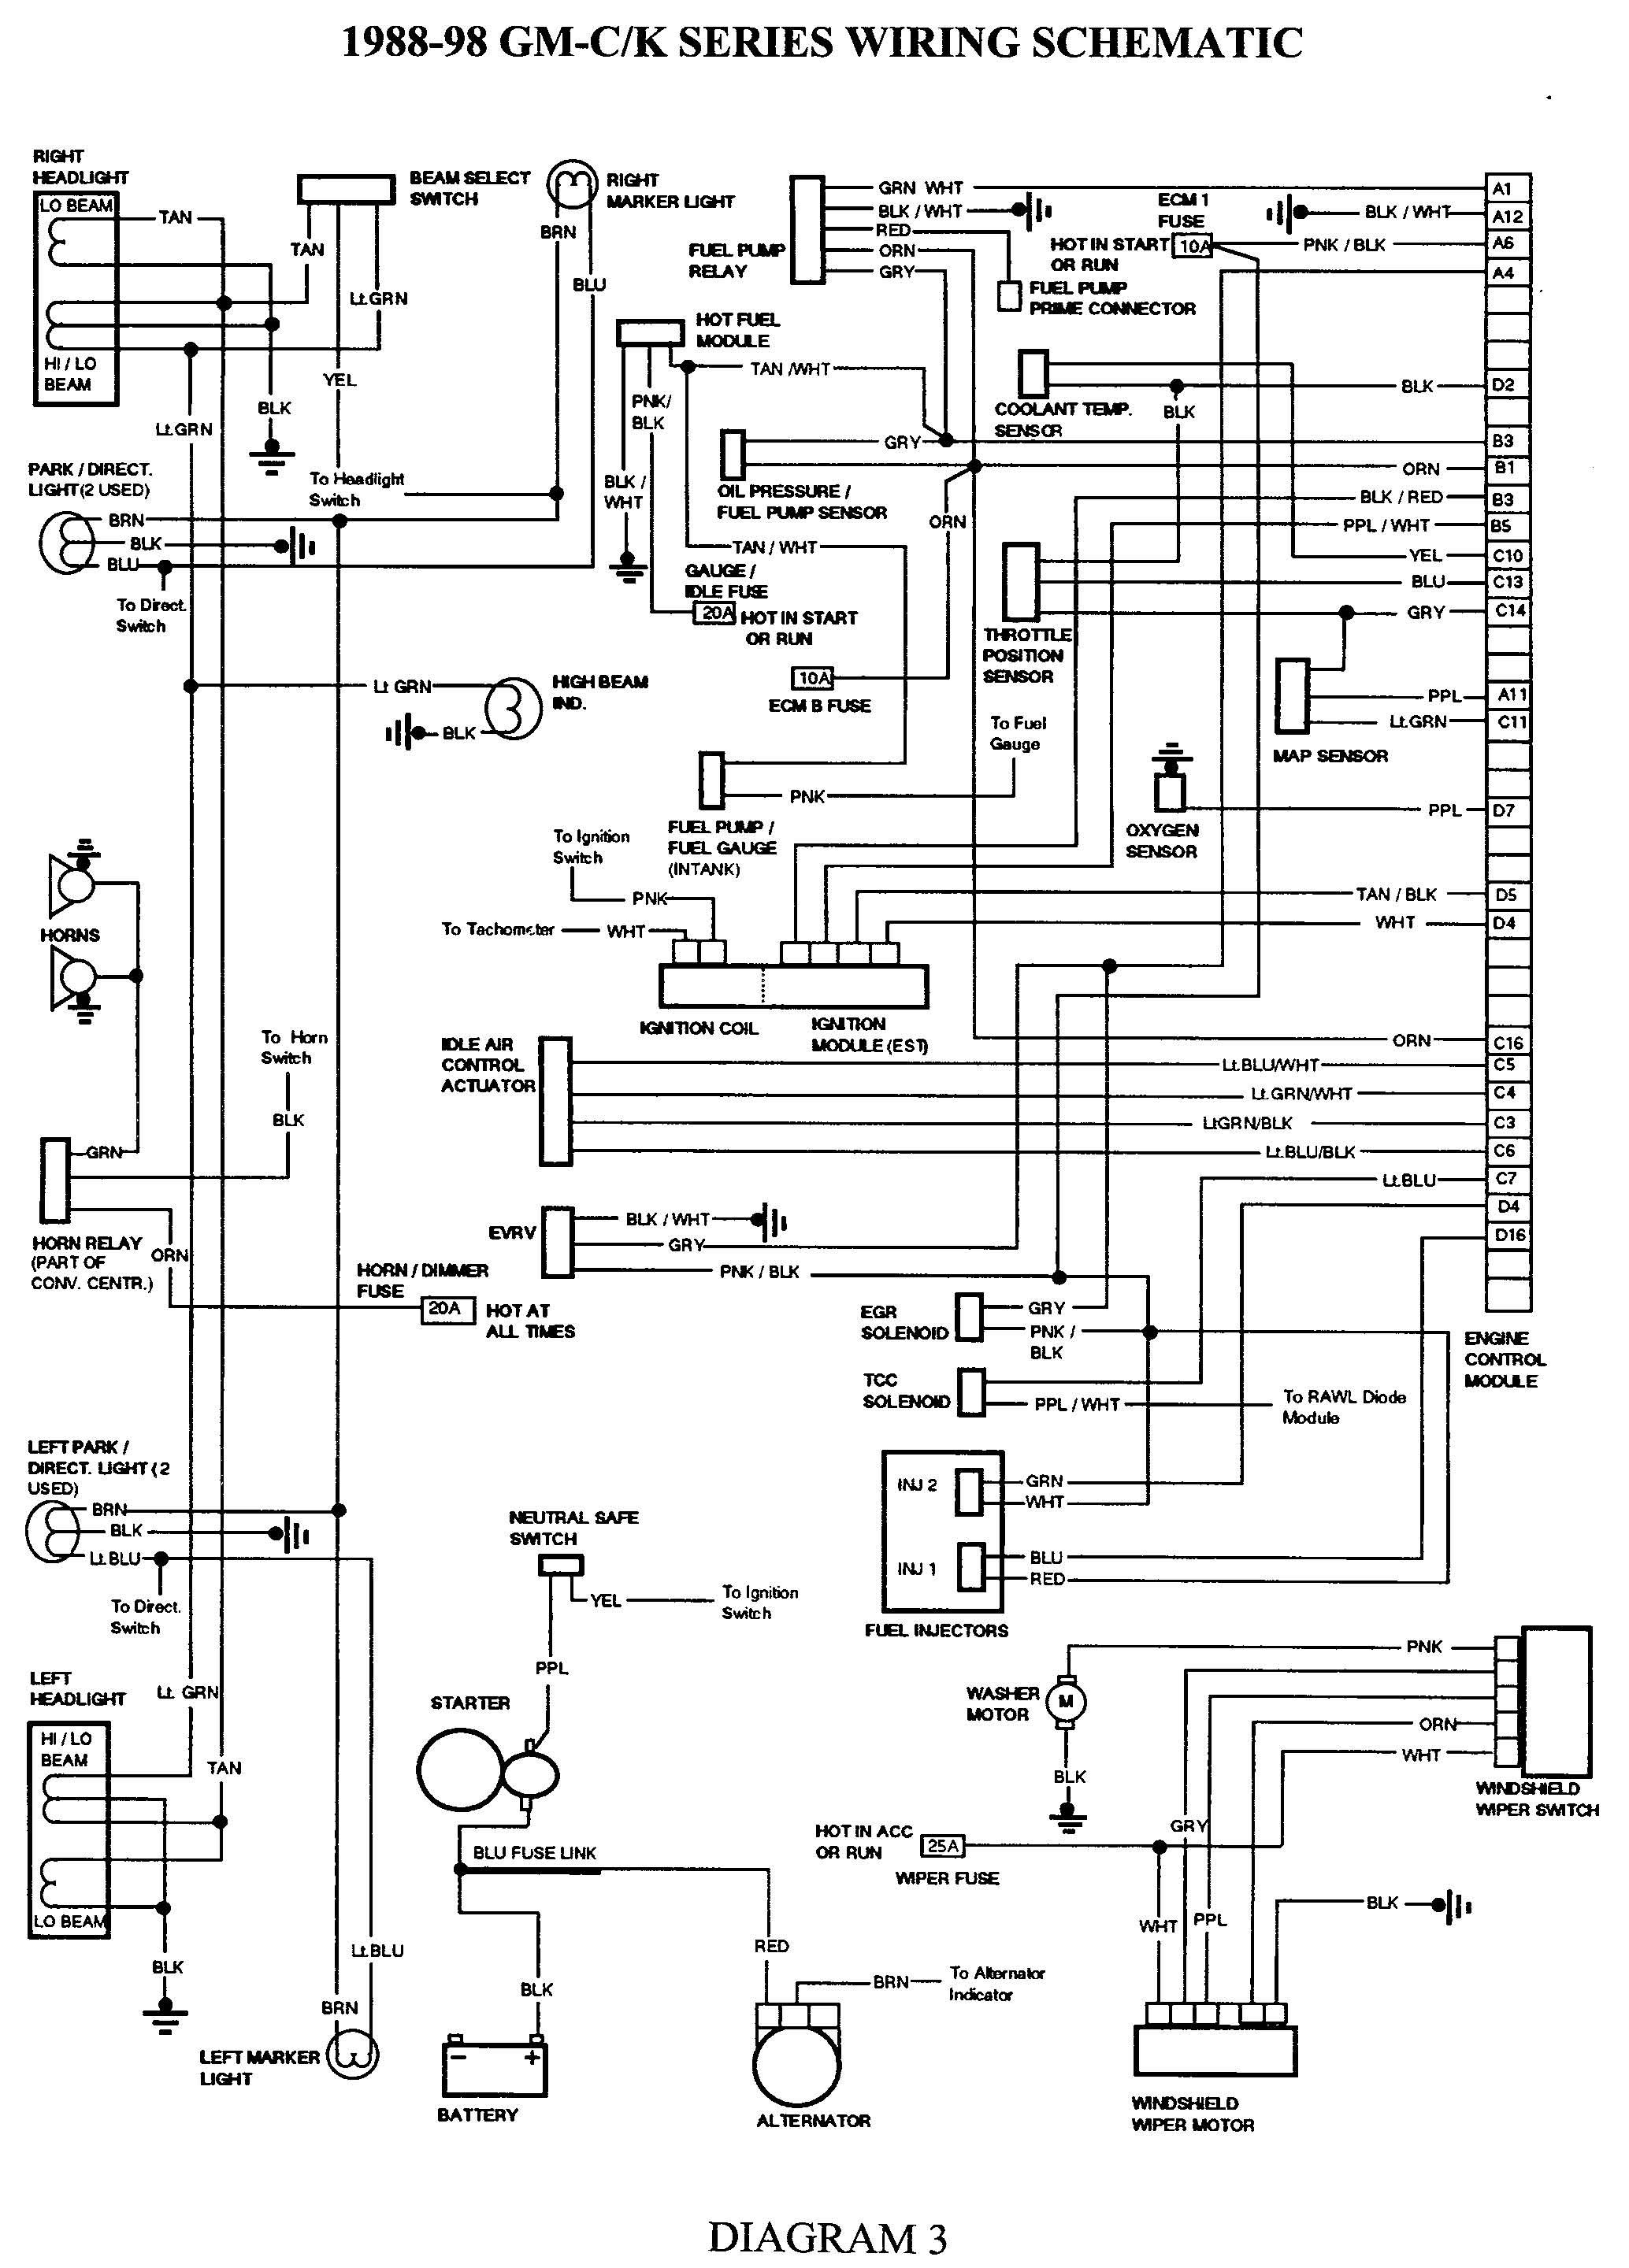 gmc truck wiring diagrams on gm wiring harness diagram 88 98 kcgmc truck wiring diagrams on gm wiring harness diagram 88 98 1994 chevy silverado, chevy